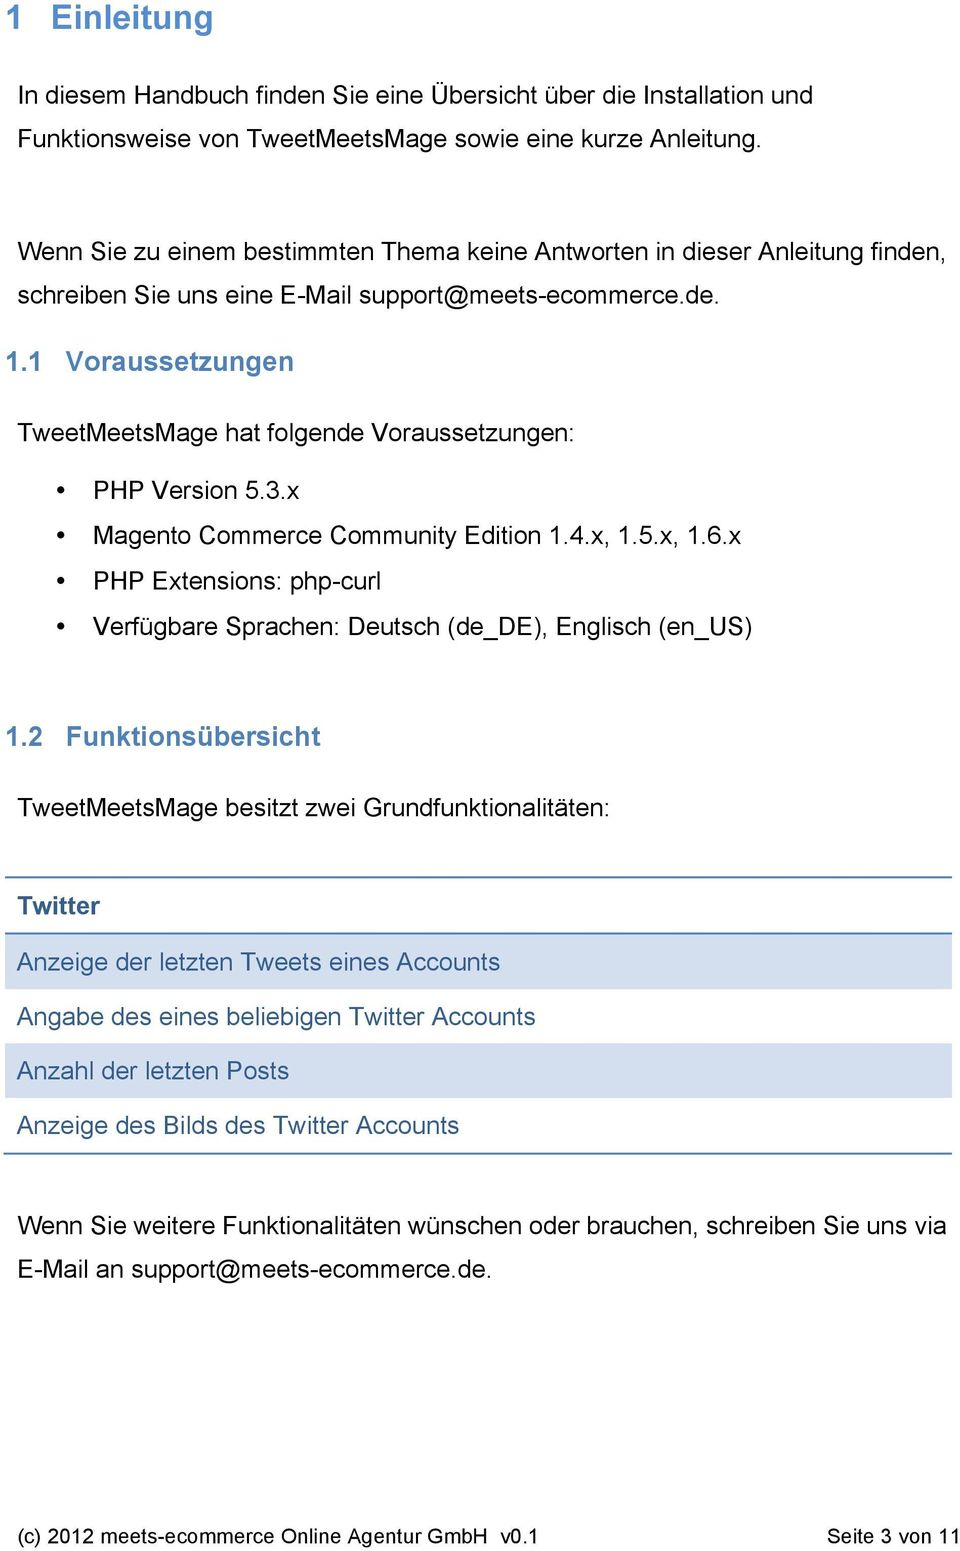 1 Voraussetzungen TweetMeetsMage hat folgende Voraussetzungen: PHP Version 5.3.x Magento Commerce Community Edition 1.4.x, 1.5.x, 1.6.